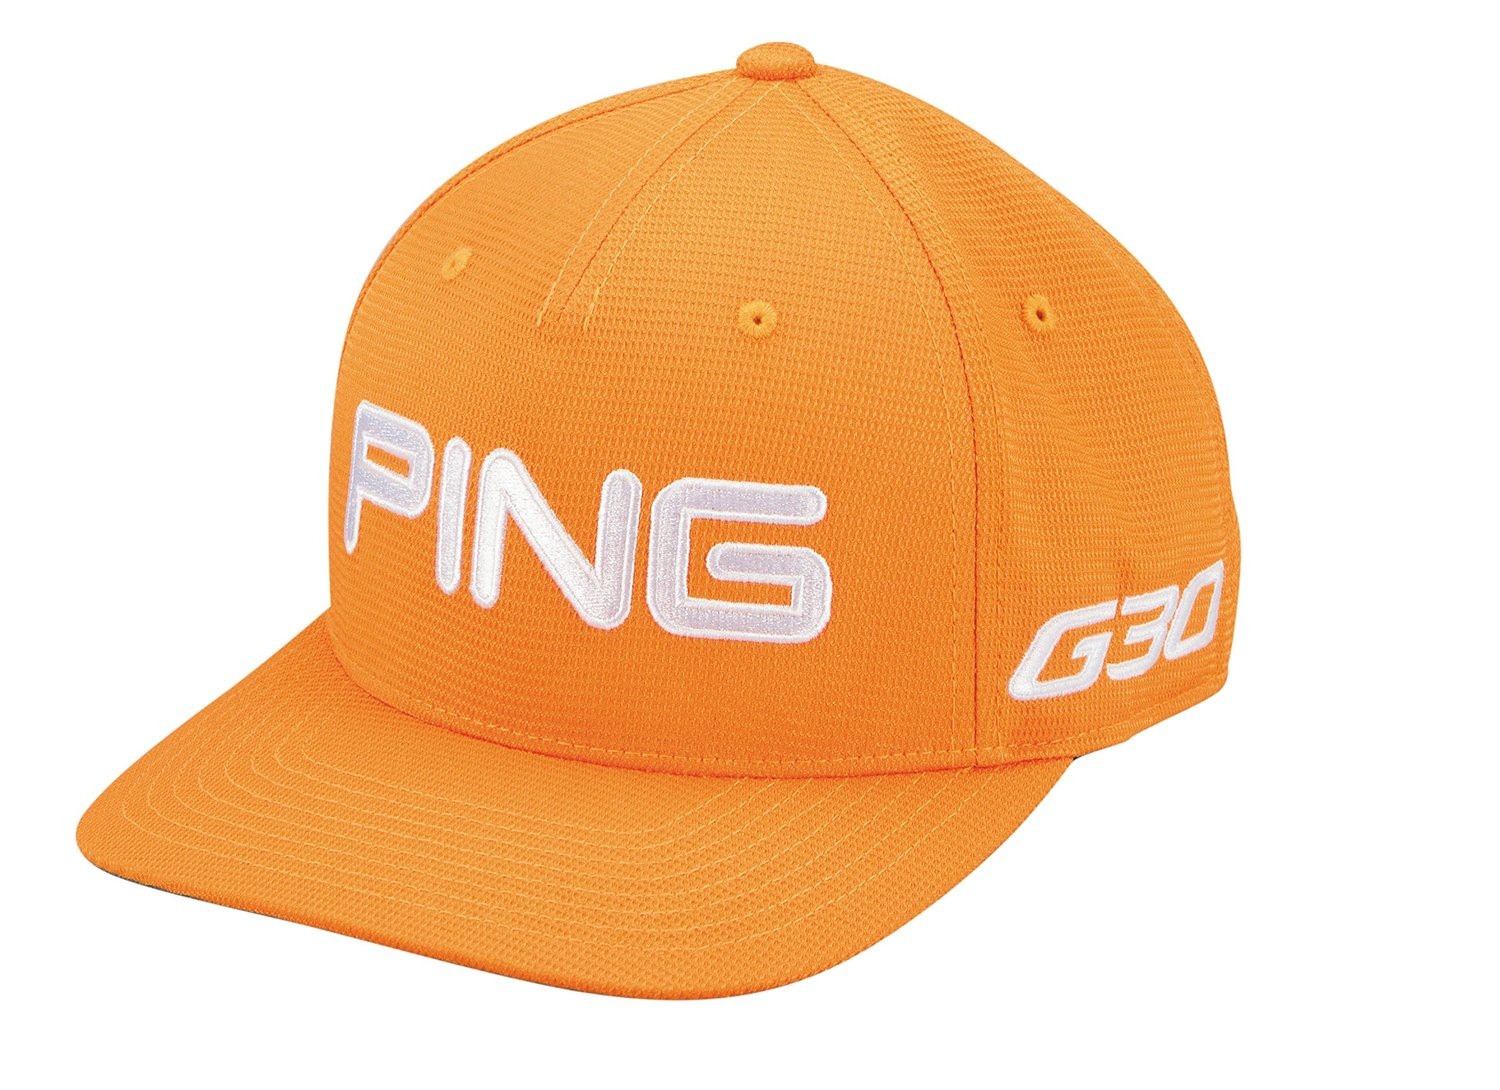 f76056289d89e Get Quotations · New 2014 PING G30 Tour Structured Fitted Golf Hat COLOR   Orange White SIZE